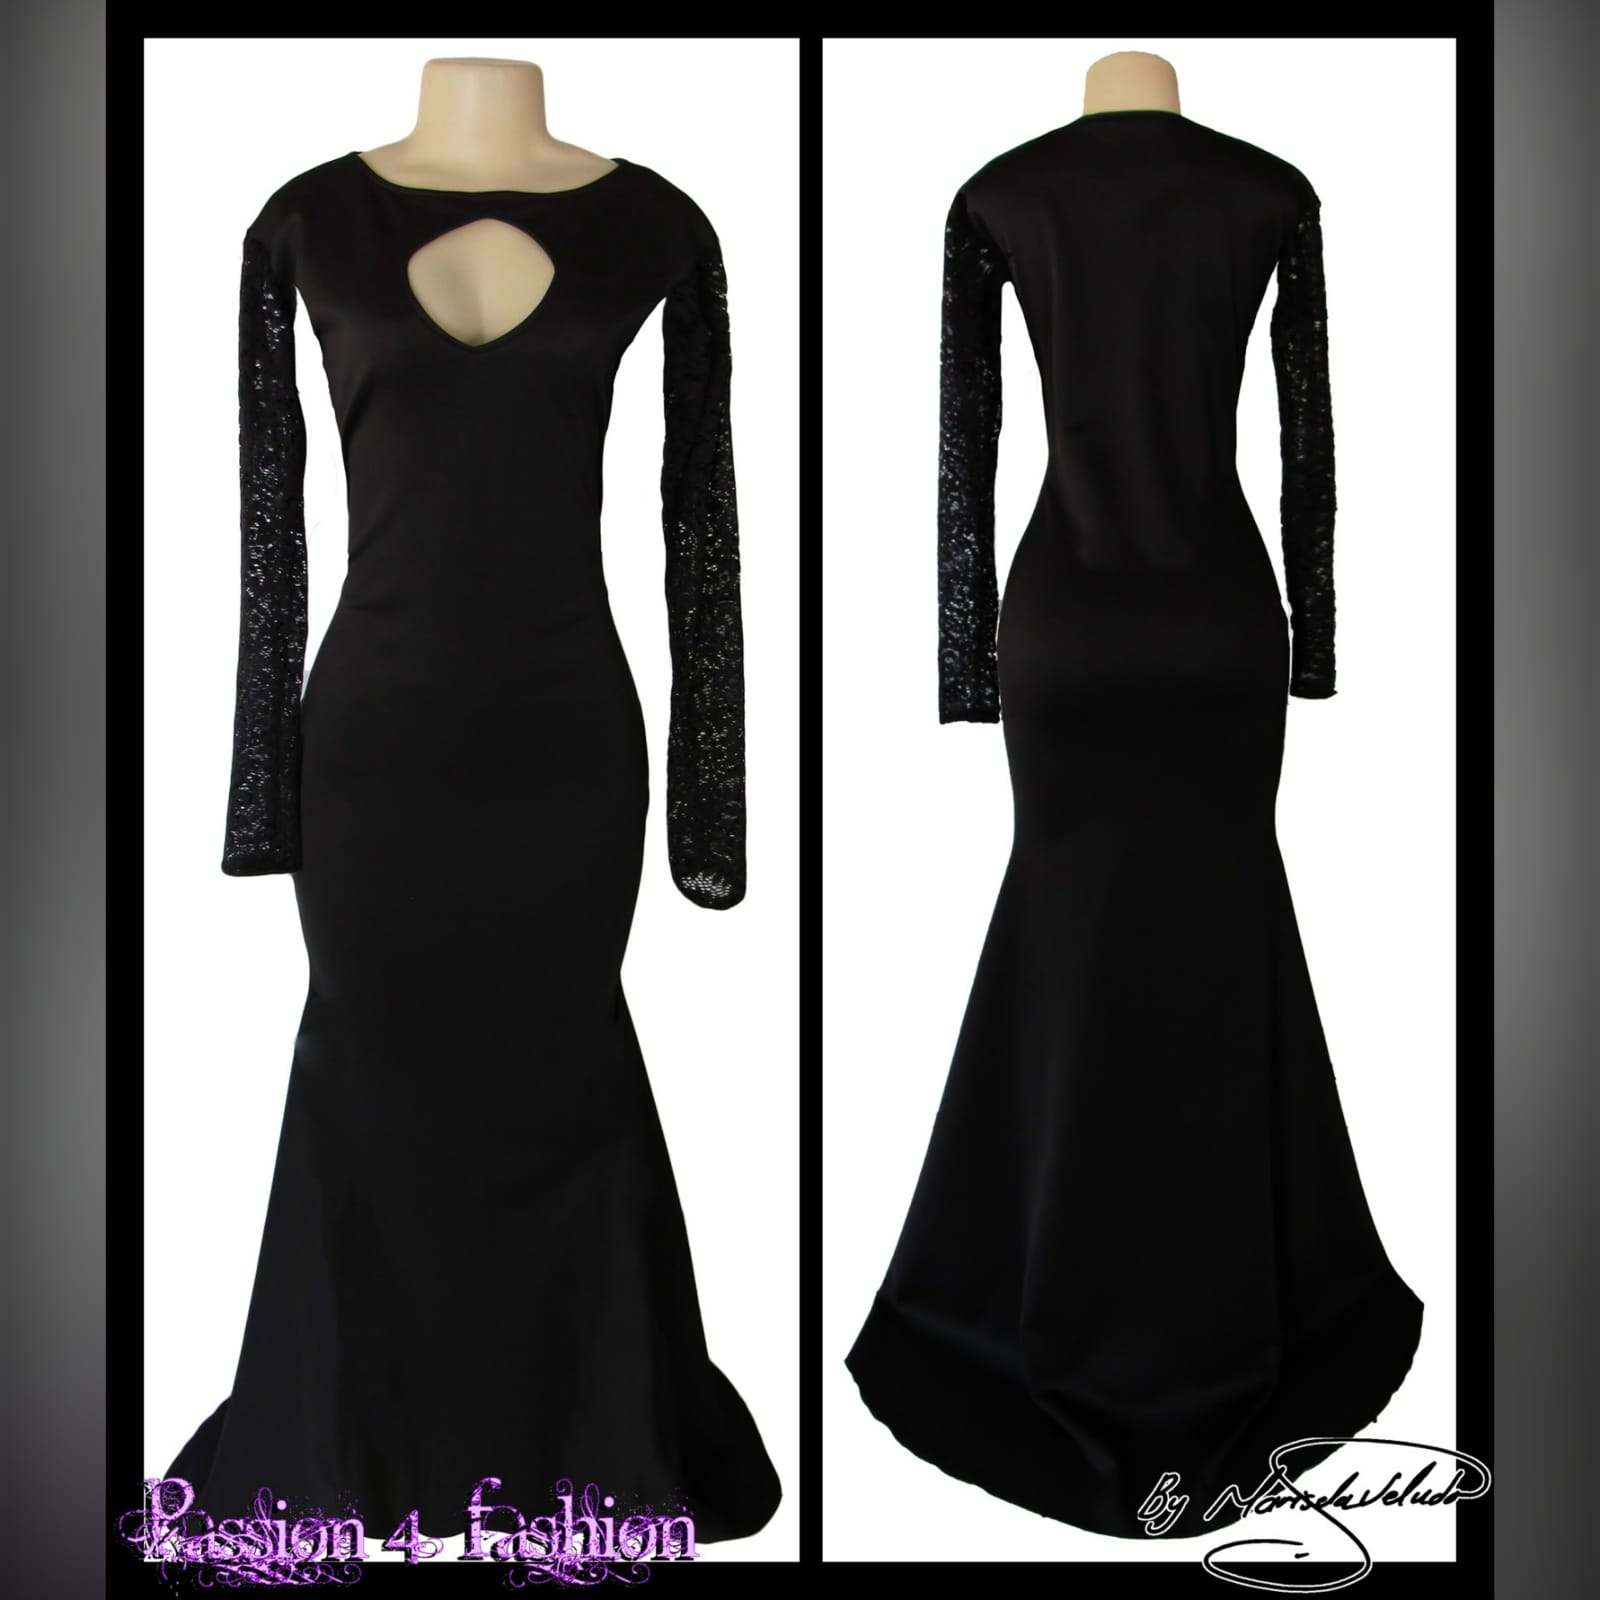 Black soft mermaid formal dress 2 black soft mermaid formal dress with sheer lace sleeves and a diamond shaped cleavage opening with a train.